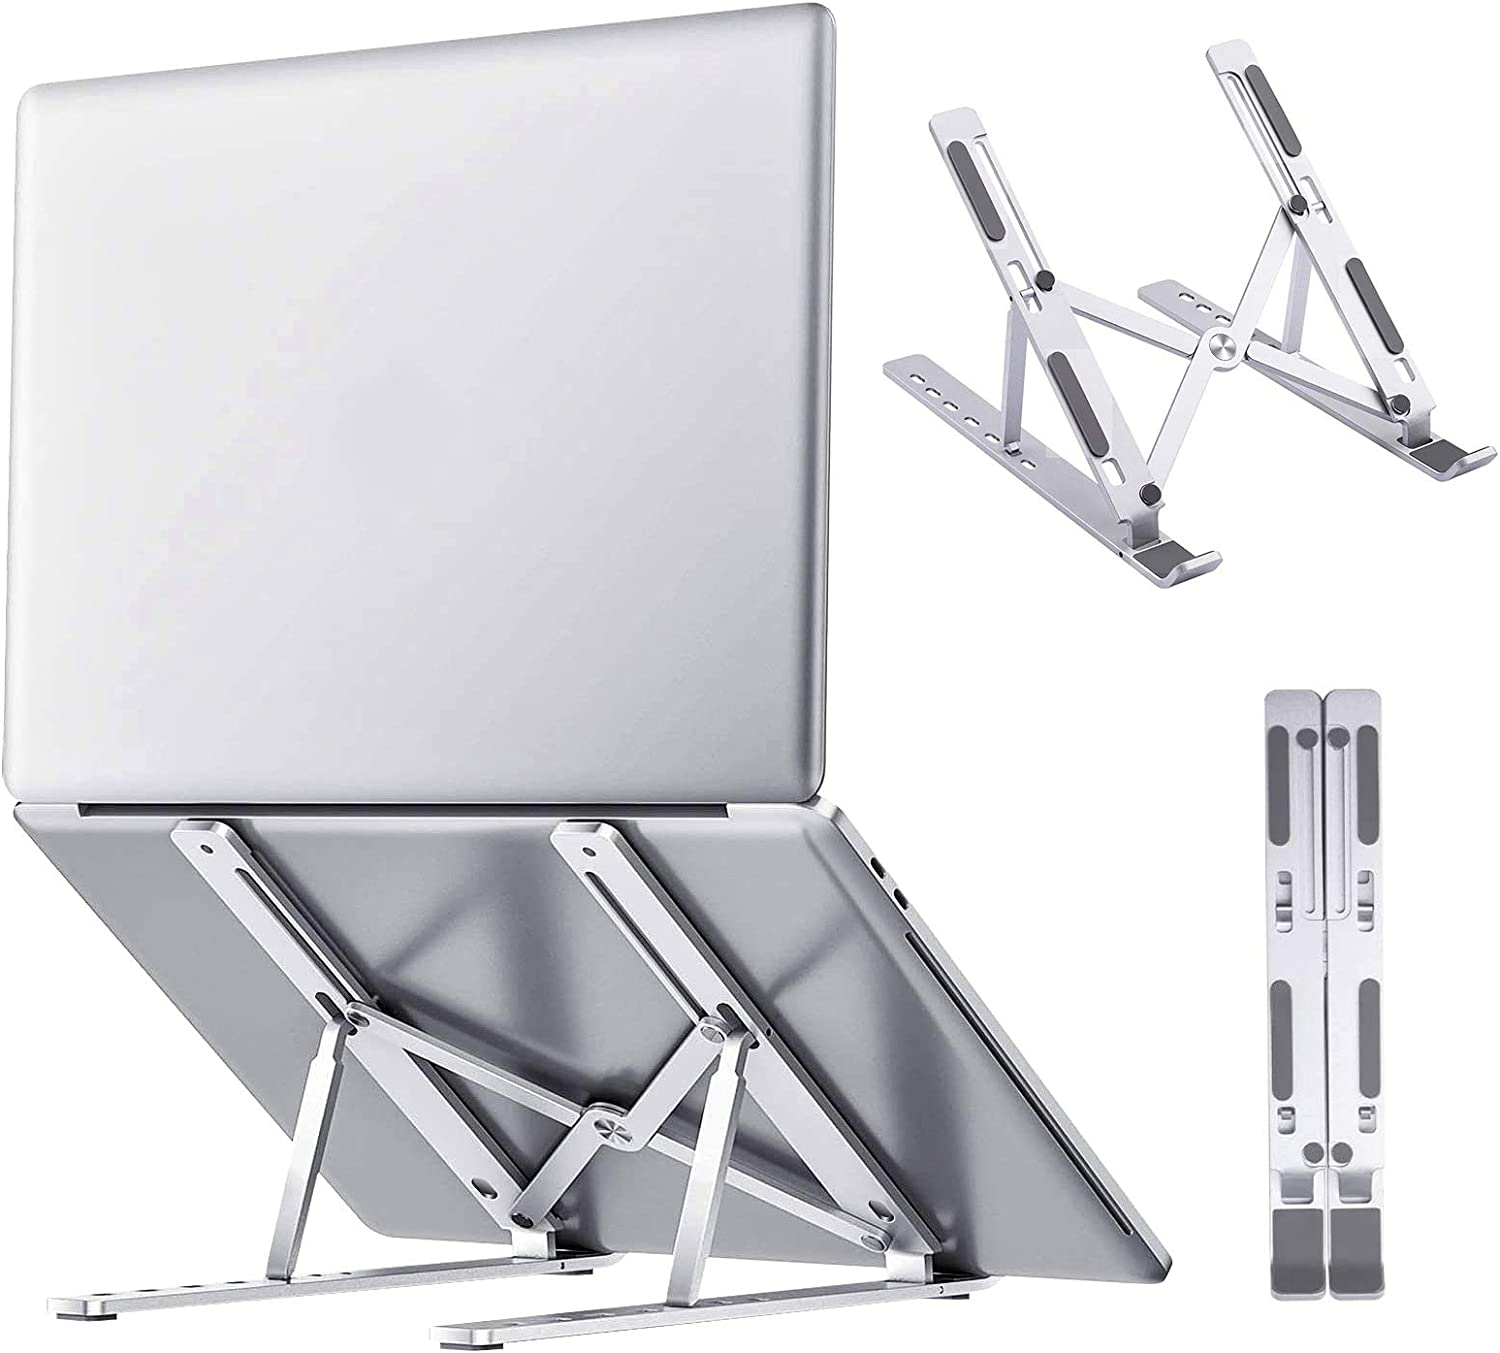 Laptop Stand, Adjustable Laptop Riser Stand for Desk, Portable Foldable Aluminum Laptop Stand Holder Cradle, Compatible with MacBook Pro/Air, iPad, HP, Dell, Lenovo (Up to 15.6